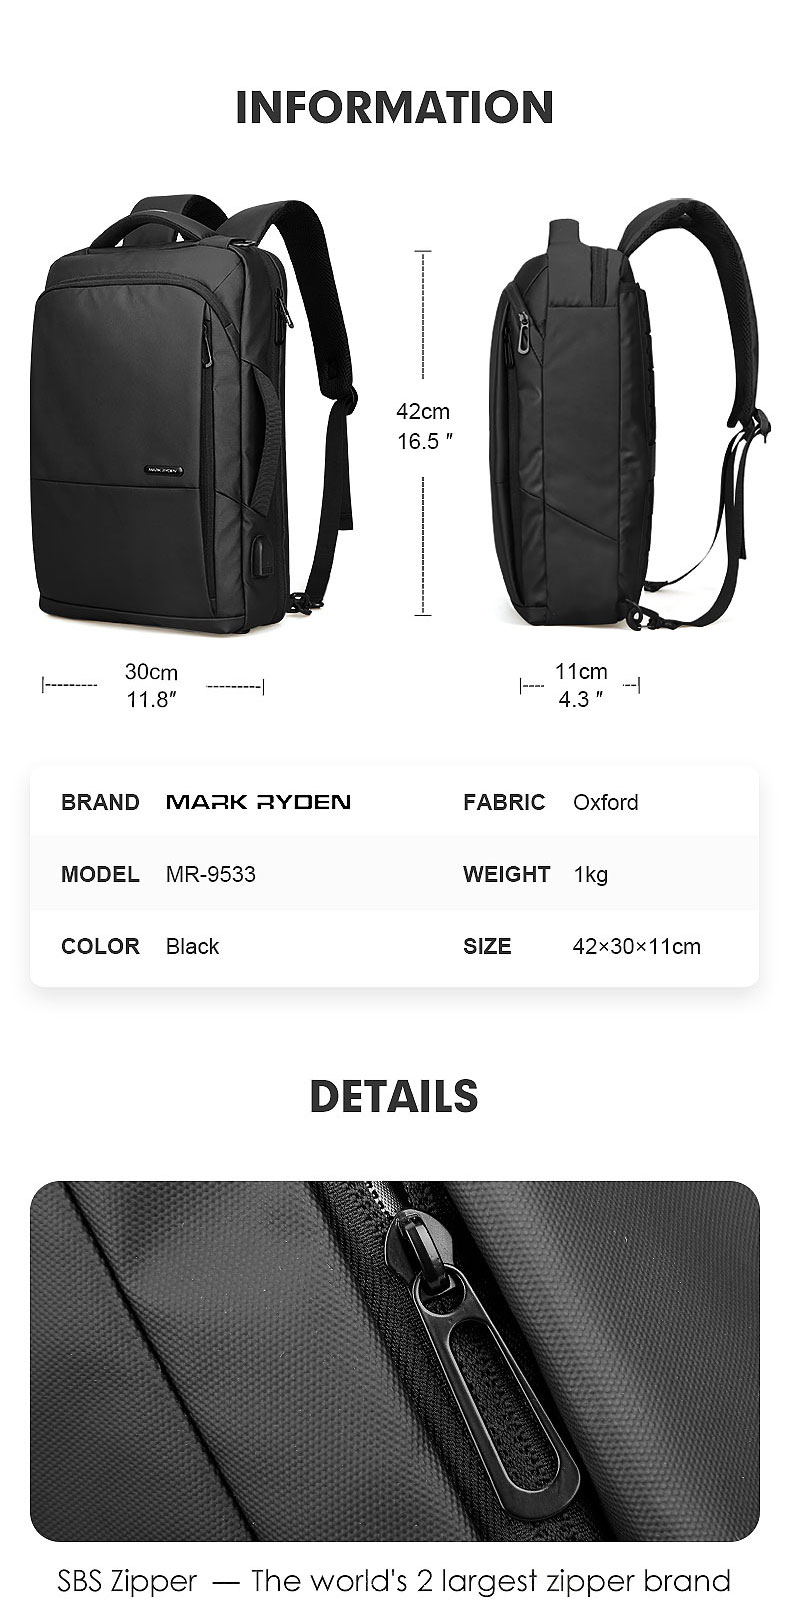 HTB12urxelCw3KVjSZR0q6zcUpXaA - Mark Ryden Travel Backpack Large Capacity Teenager Male